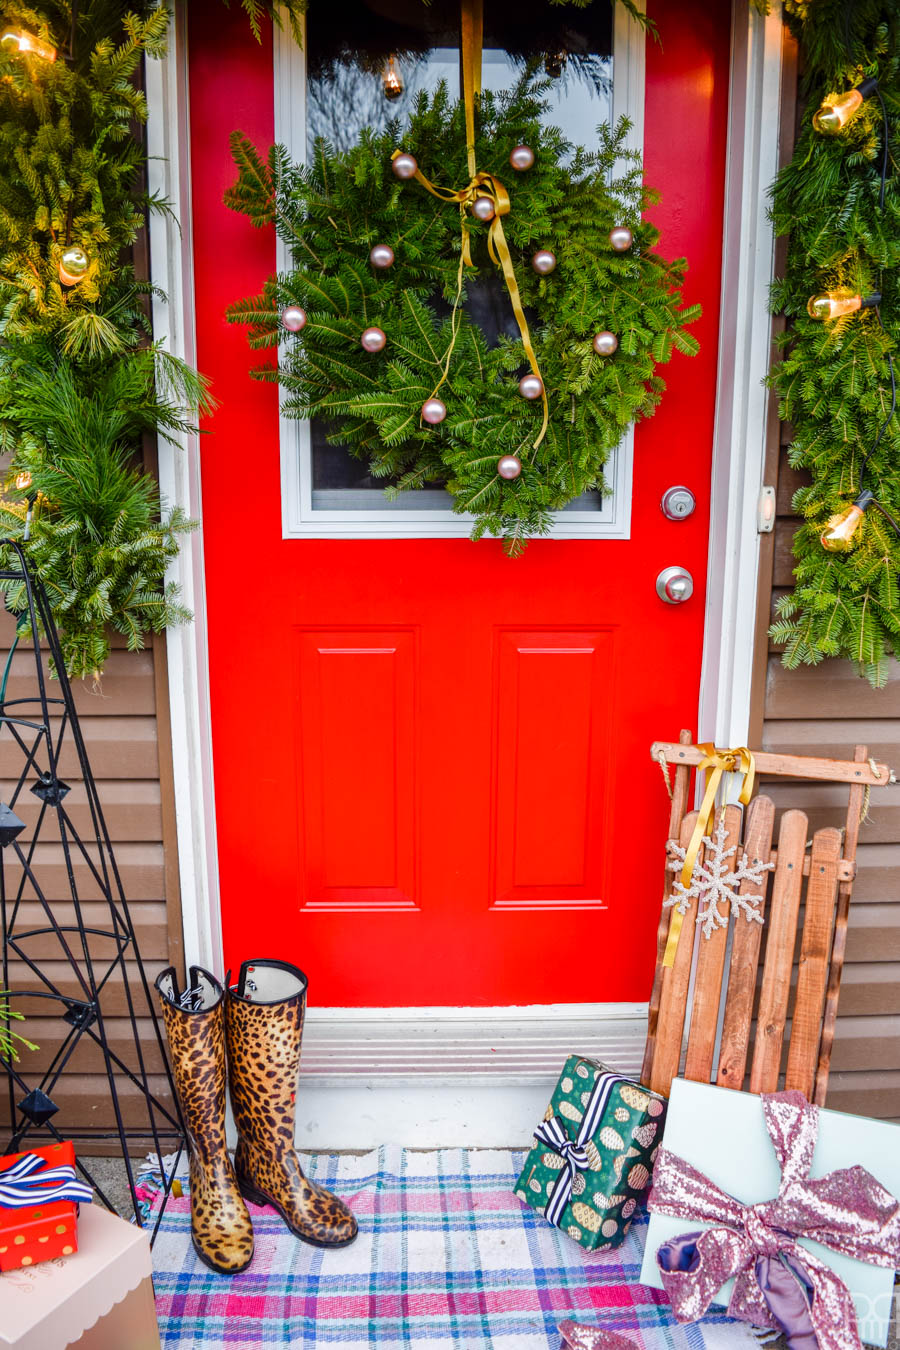 We're off to a good start over here with my colourful Christmas front porch. A bright red door and Yuletide greenery are the perfect touch.  #curbappeal #christmasporch #homefortheholidays